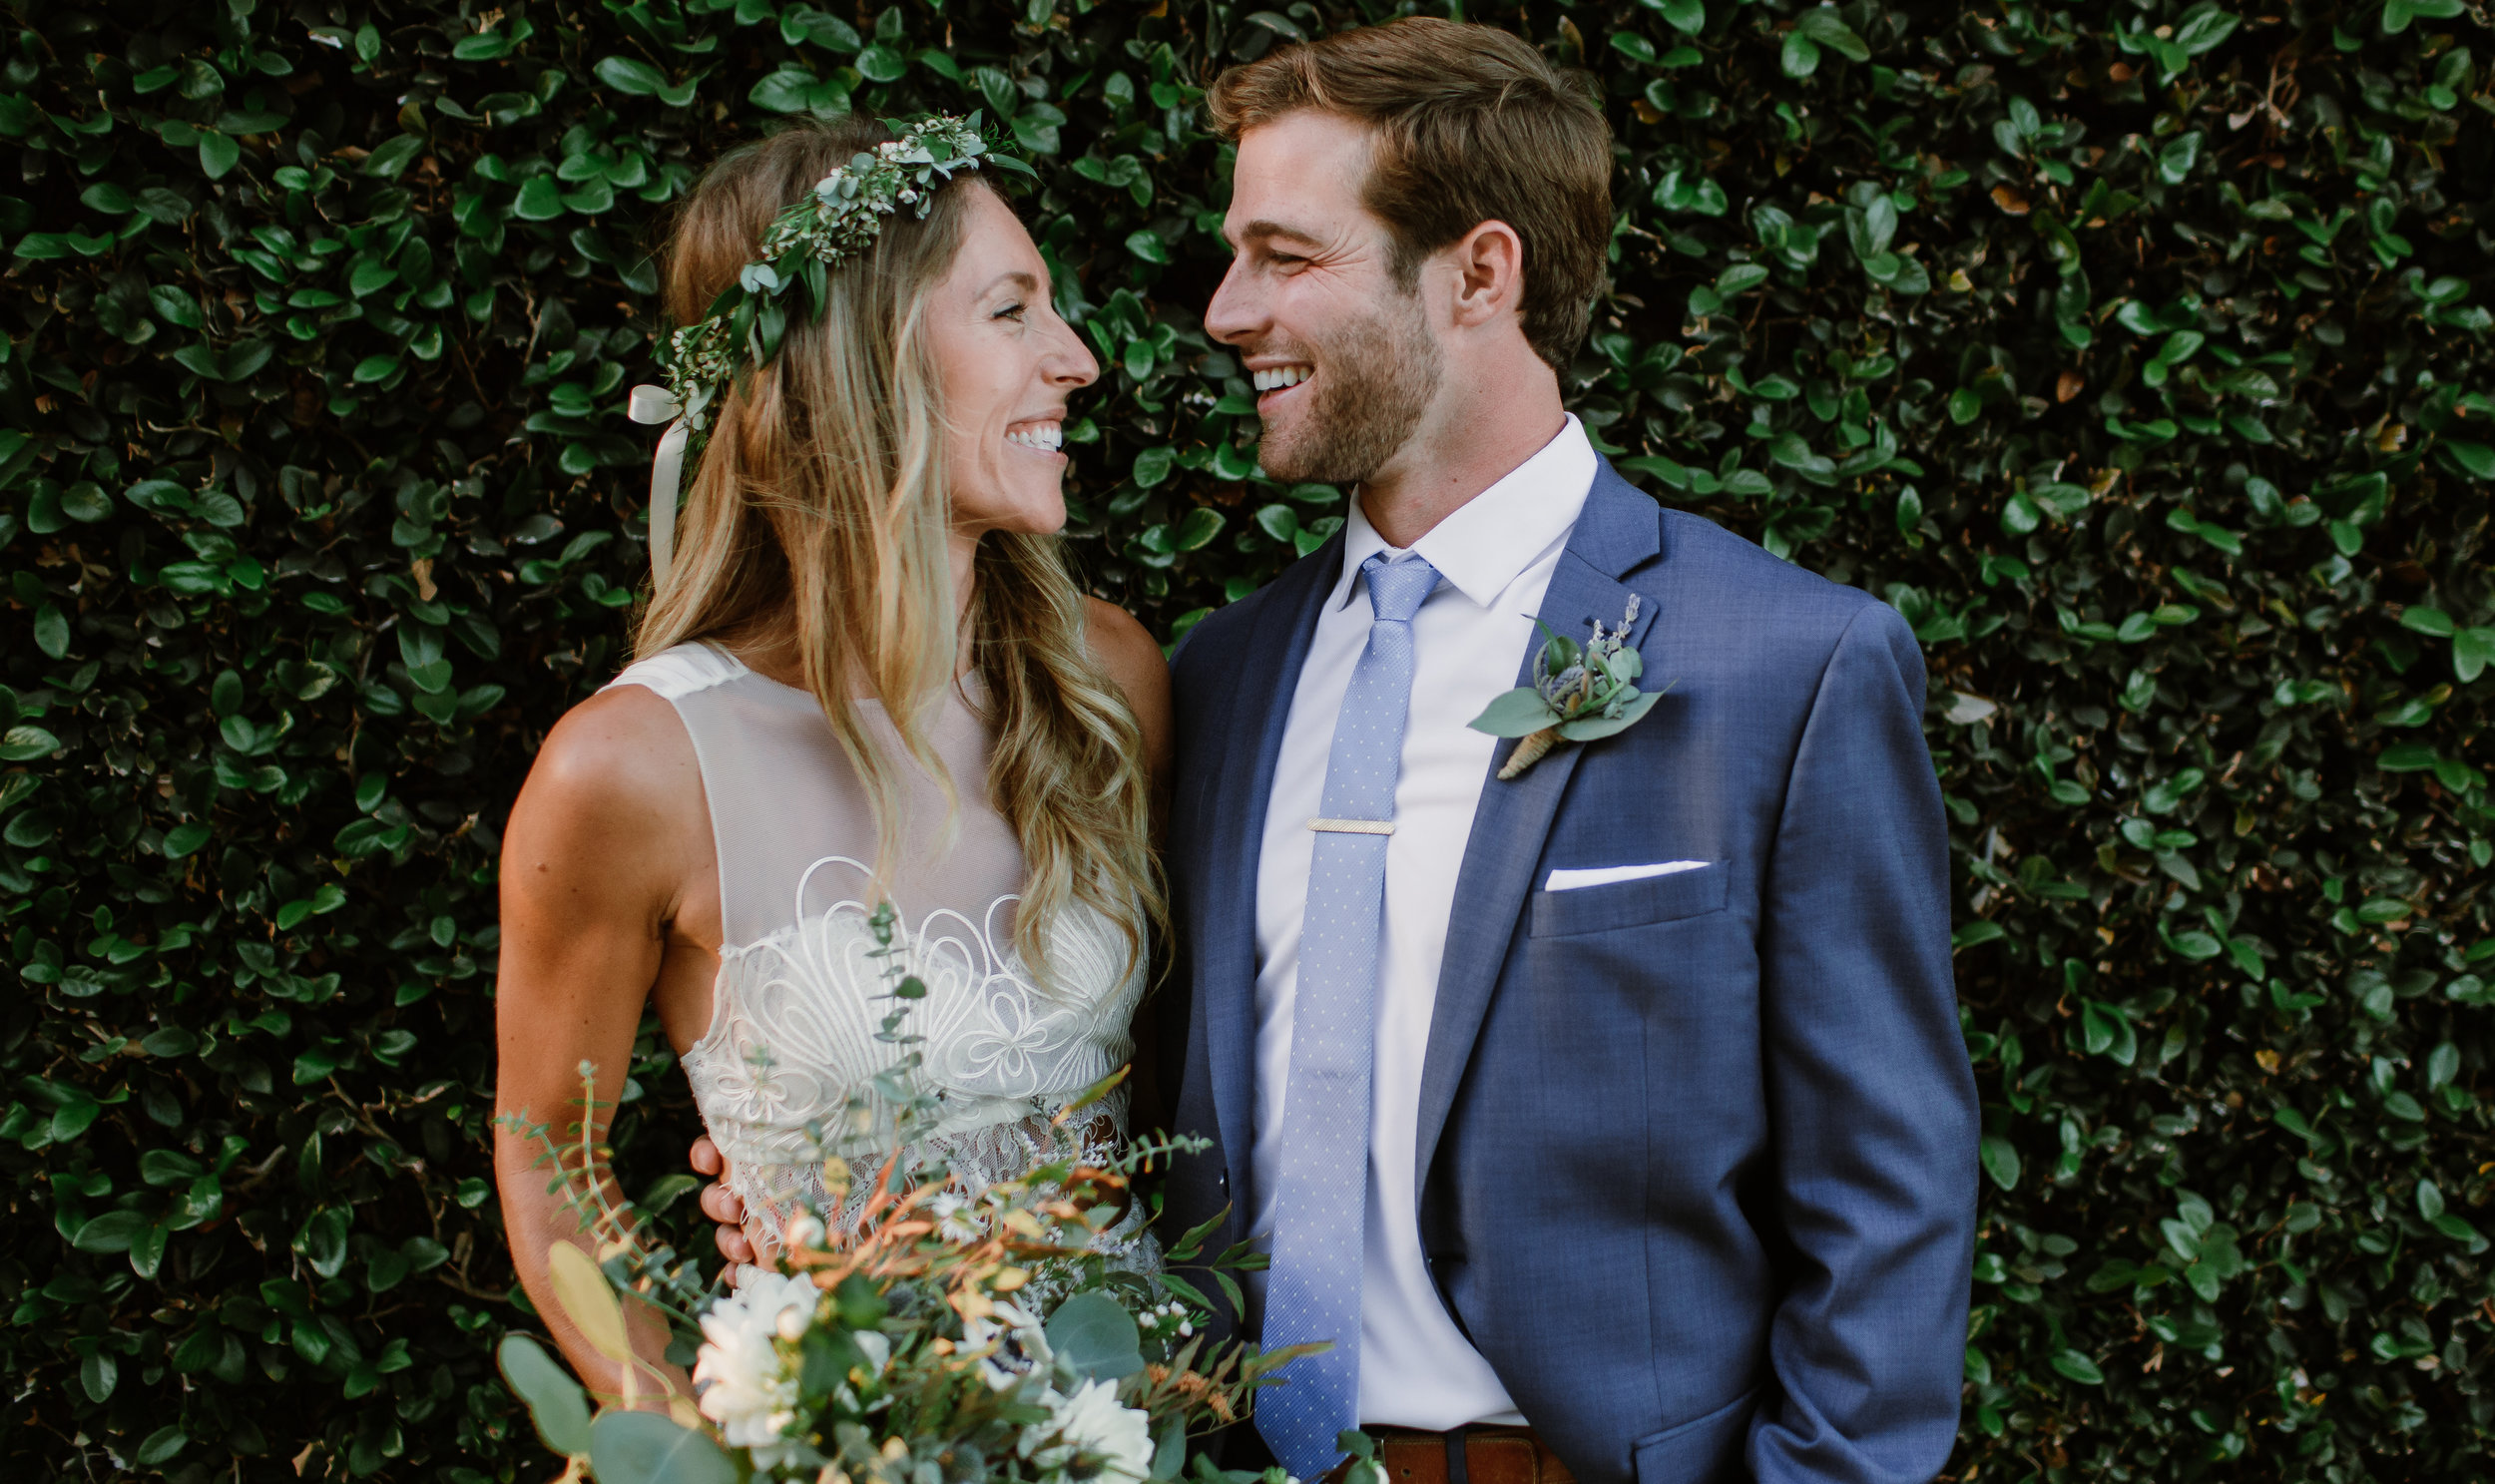 KATE & CLEM / SMOKY HOLLOW STUDIOS, CALIFORNIA WEDDING